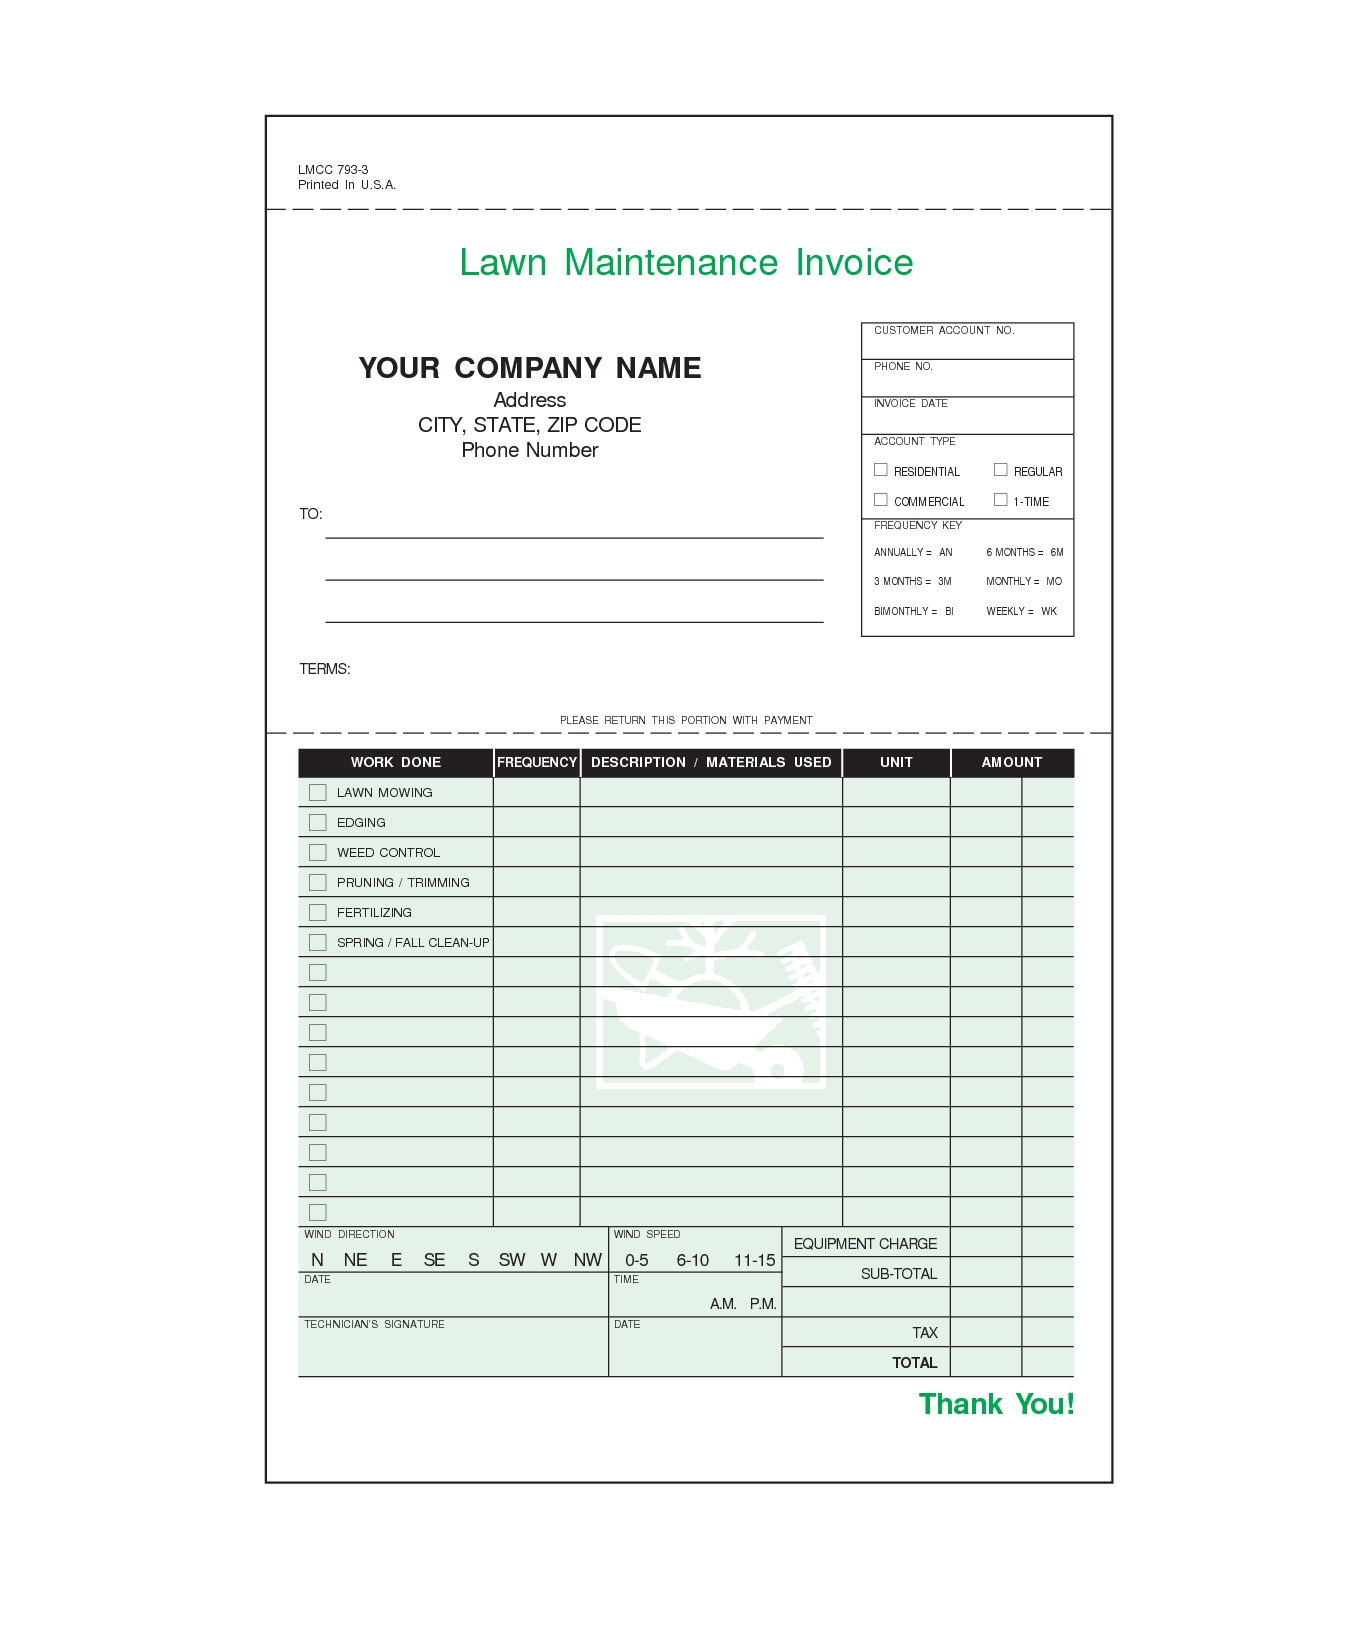 lawn service invoice template free lawn care invoice template 5bwblh41 1369 X 1650